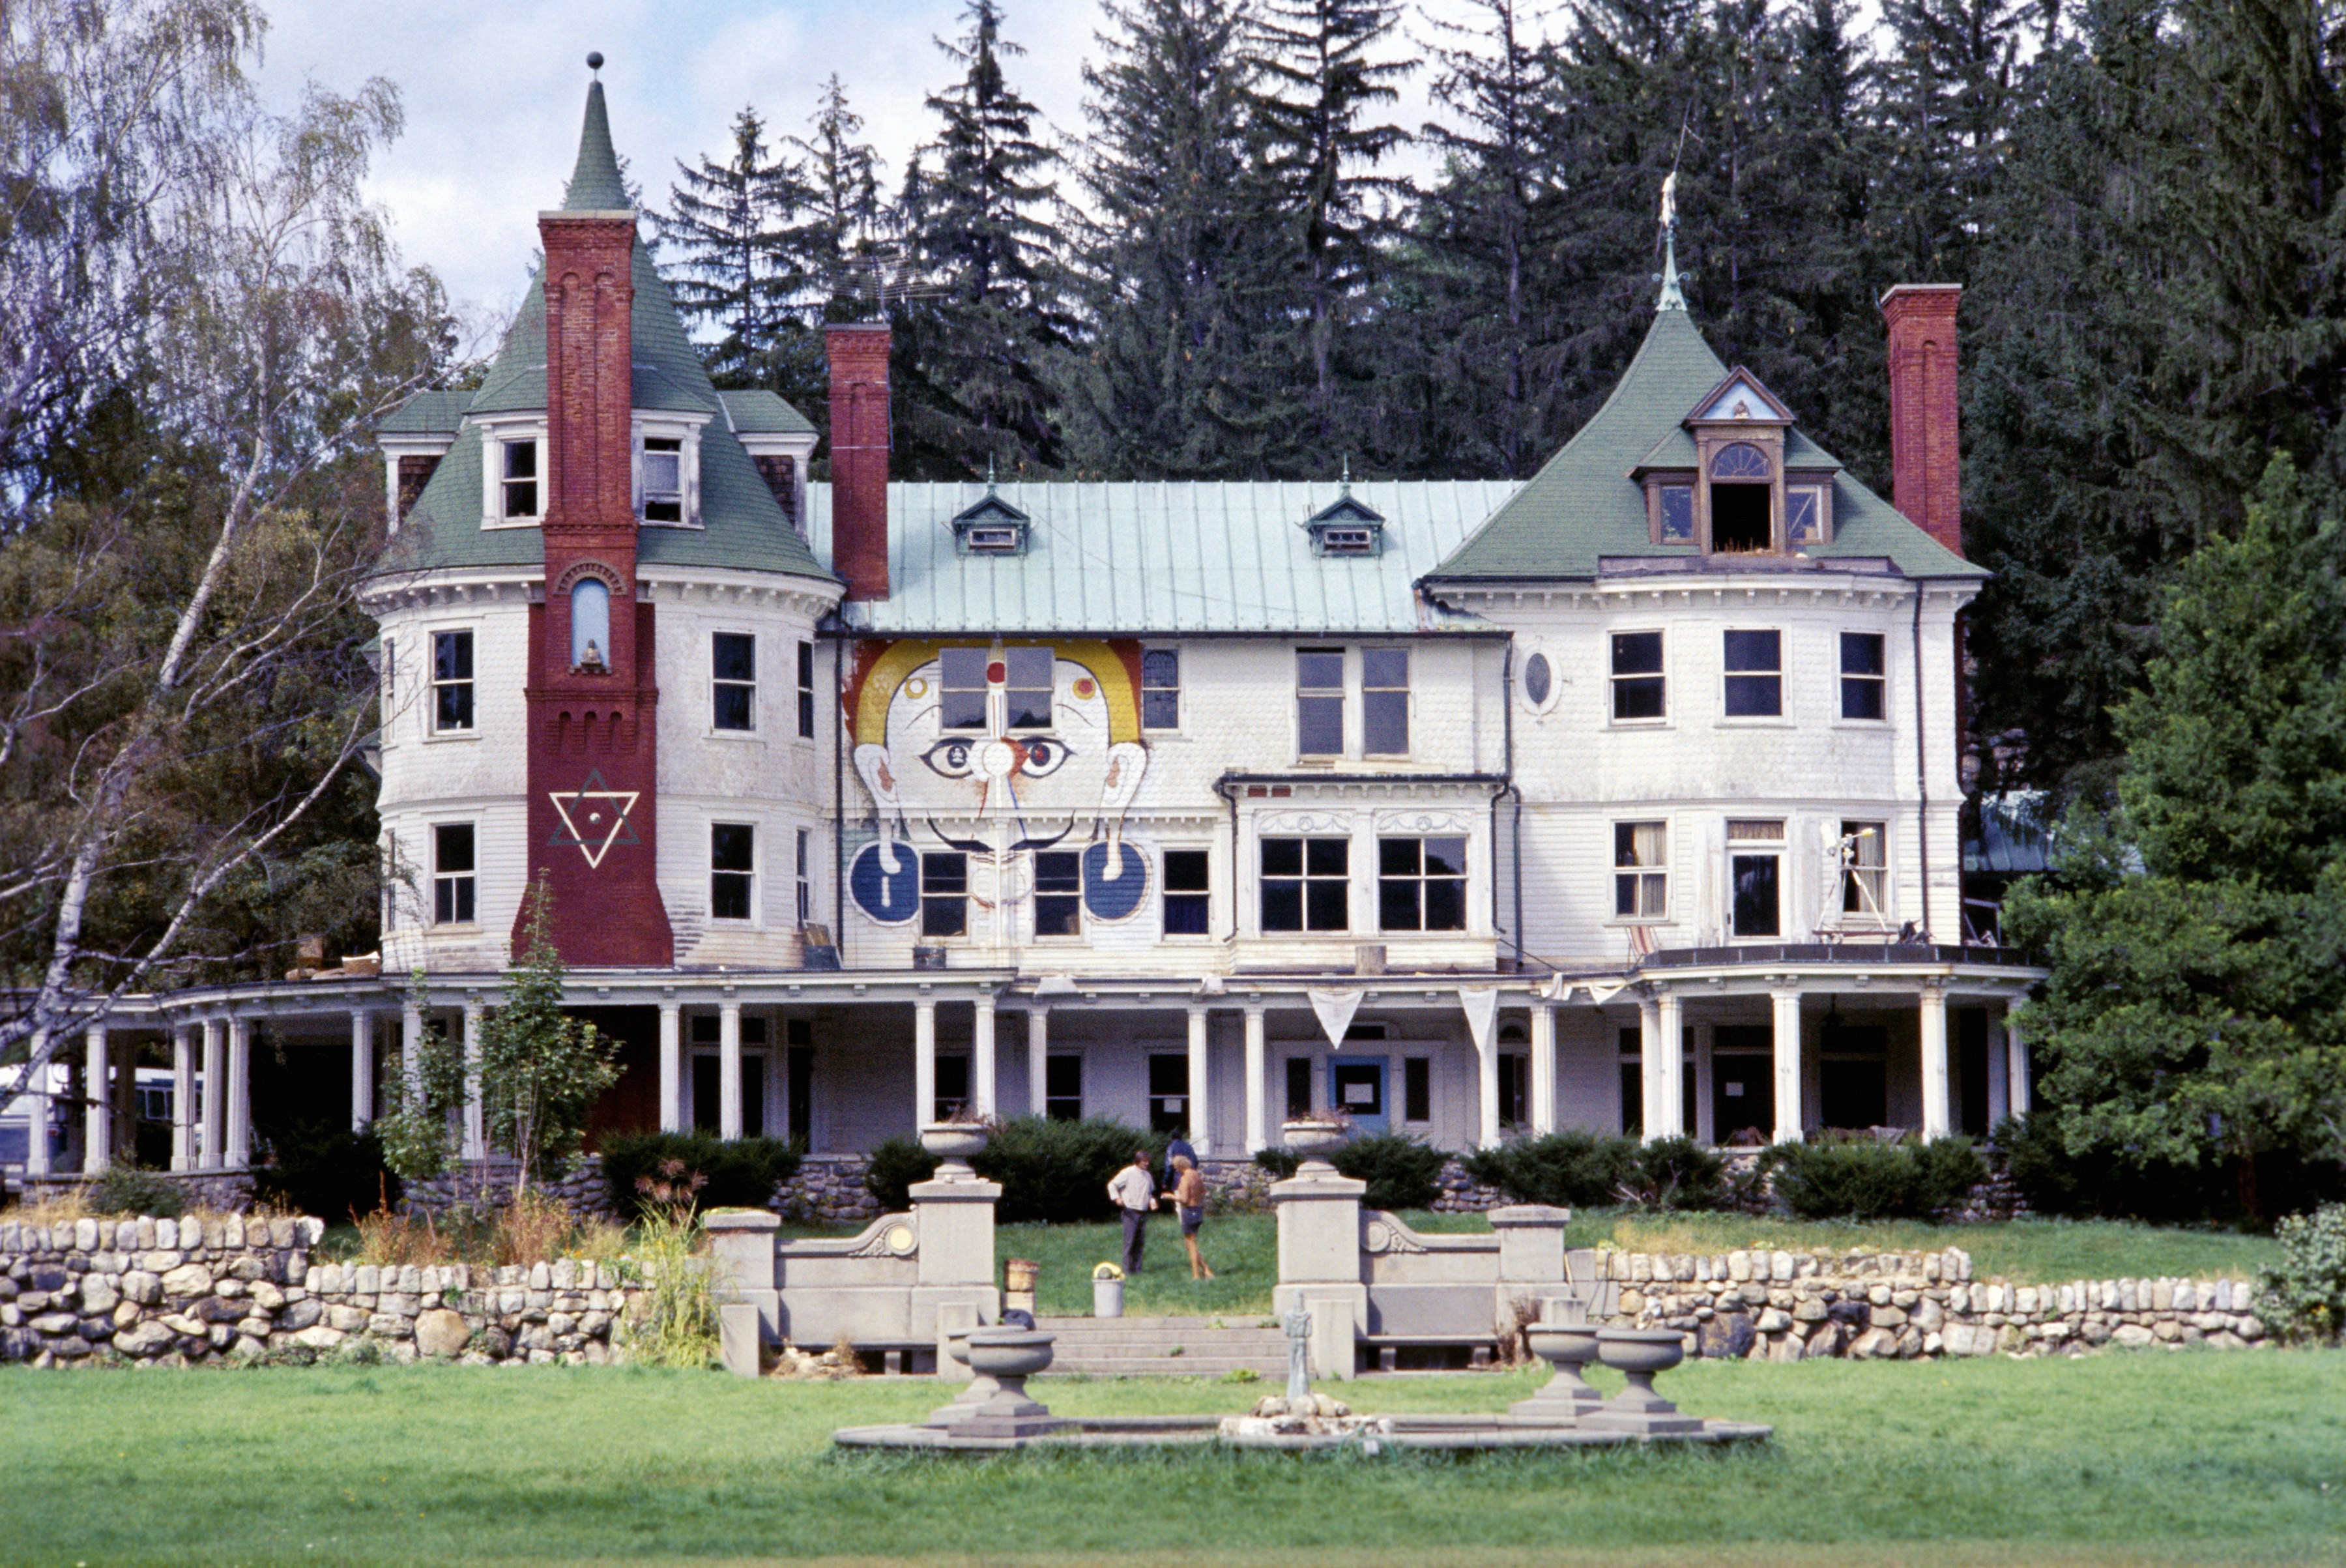 This magical drug mansion in Upstate New York is where the